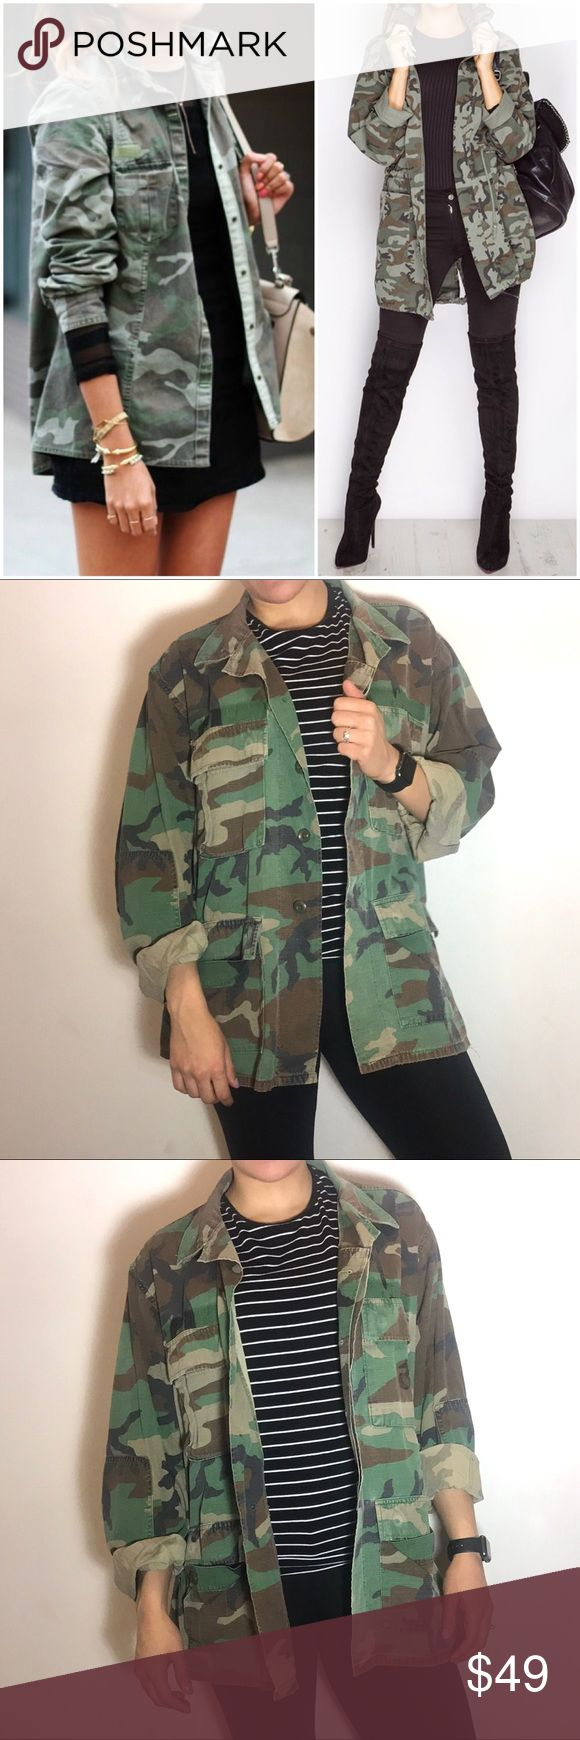 American Apparel Camo Military Jacket American Apparel Camo Military Jacket -Size M. -Oversized fit. -Excellent condition. *Cover photo for styling ideas only, actual item pictured in the other pictures.  NO Trades. Please make all offers through offer button. American Apparel Jackets & Coats